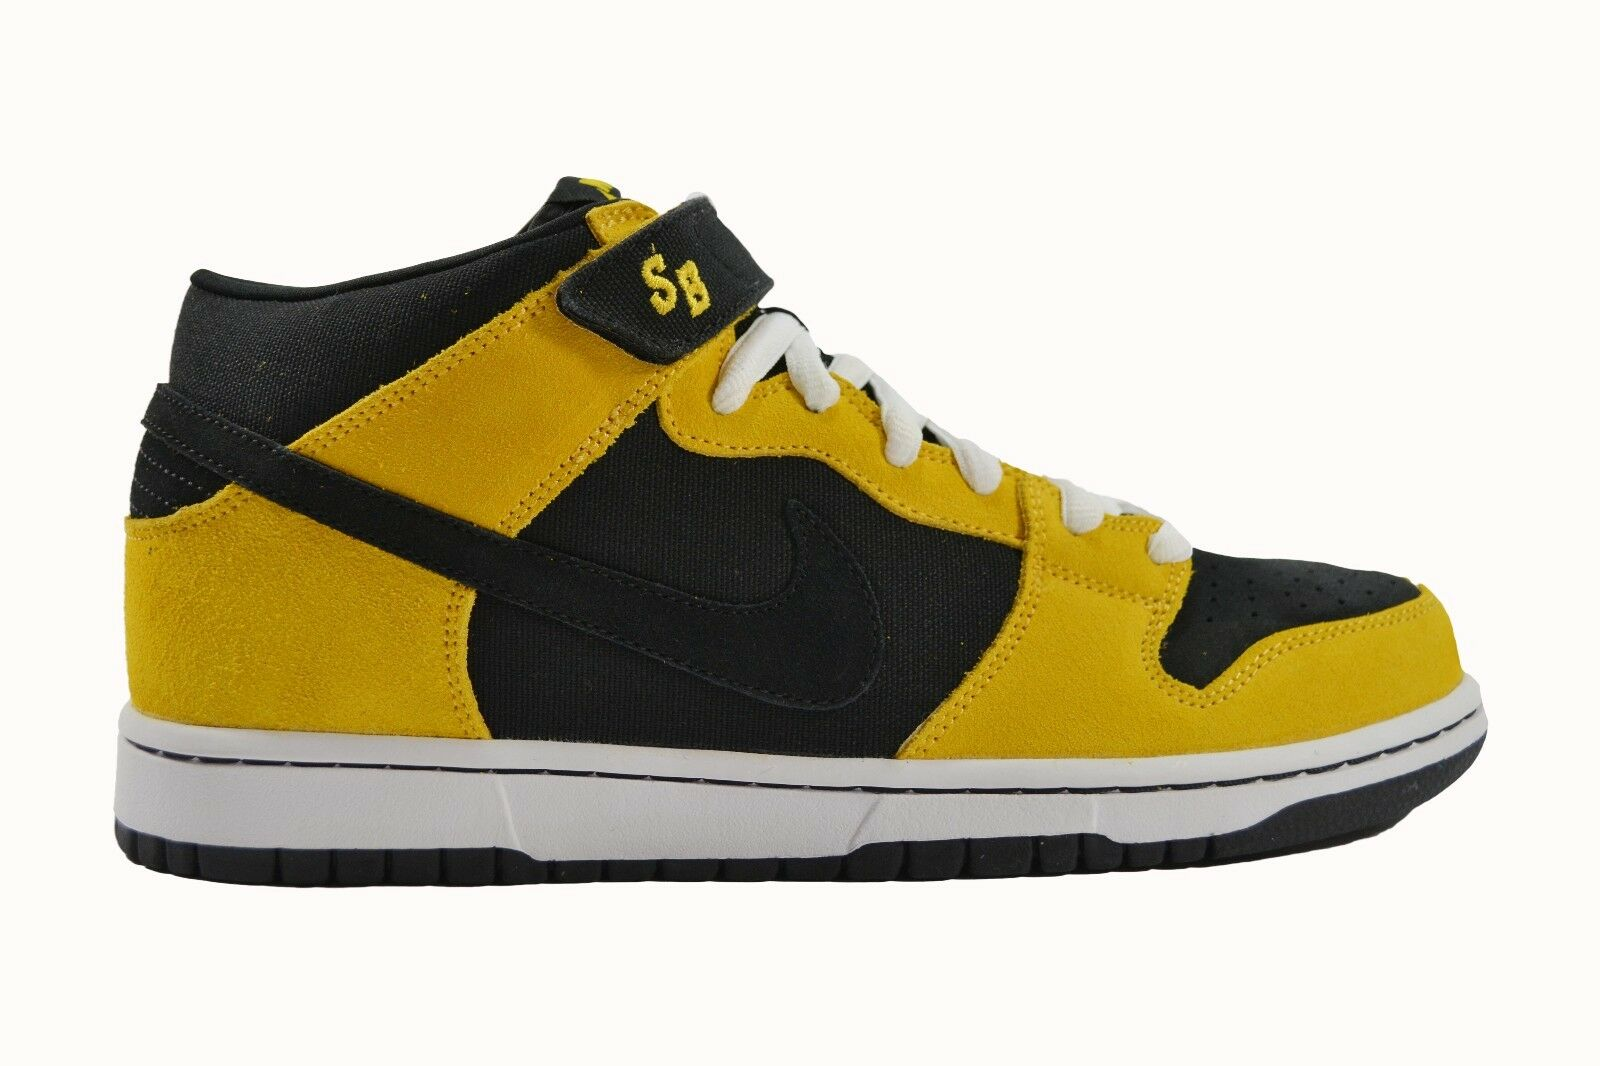 Nike Wu Tang DUNK MID PRO SB Black Varsity Yellow 314383-004 Price reduction Men's Shoes New shoes for men and women, limited time discount